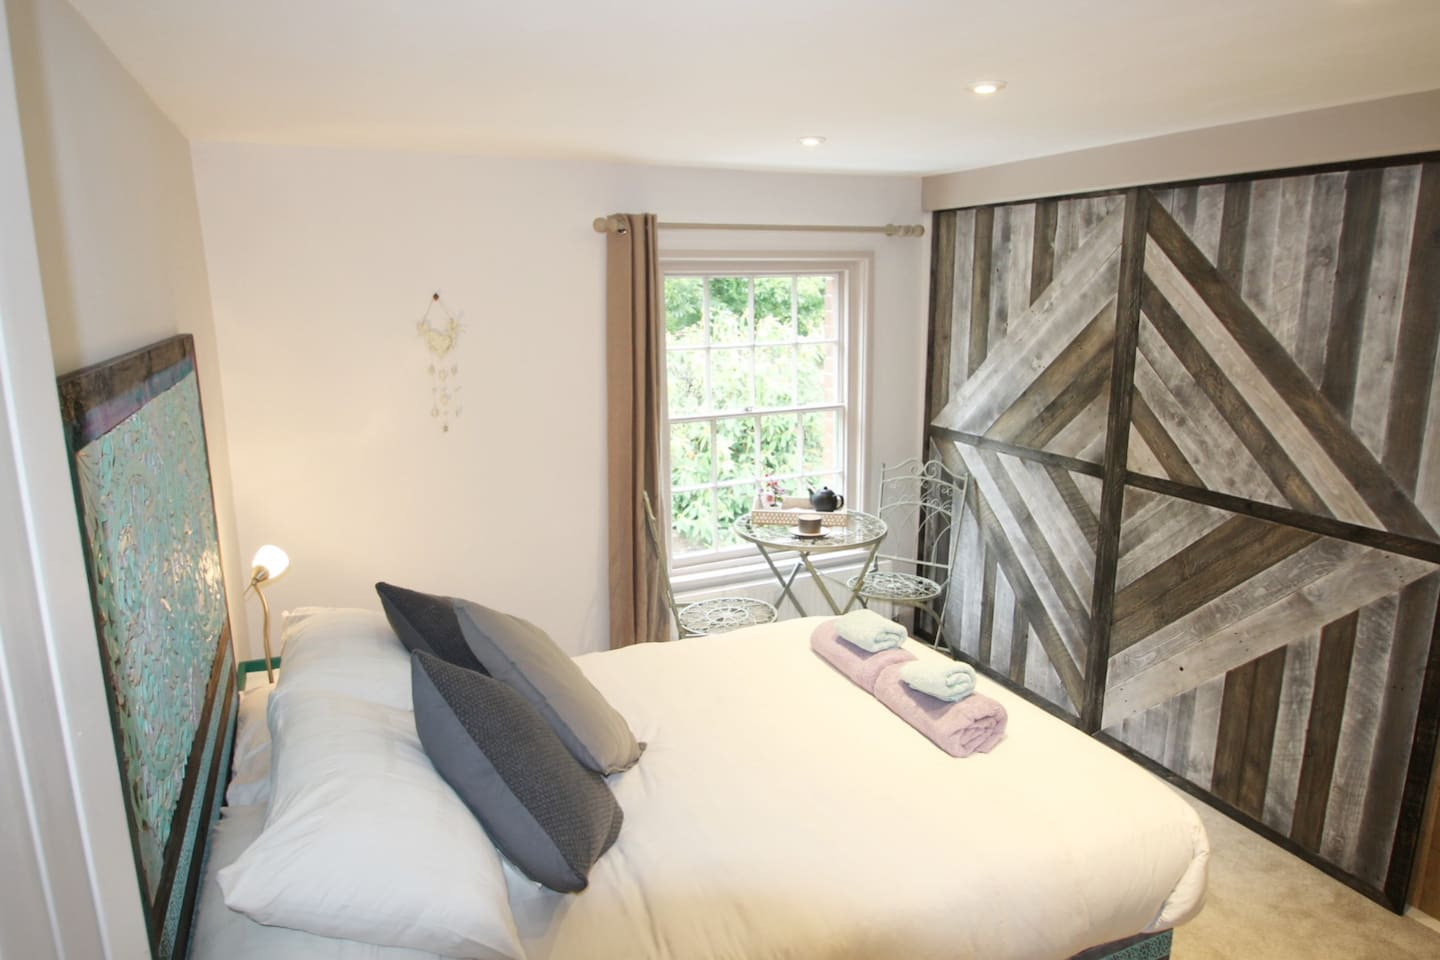 Our lovely guest room